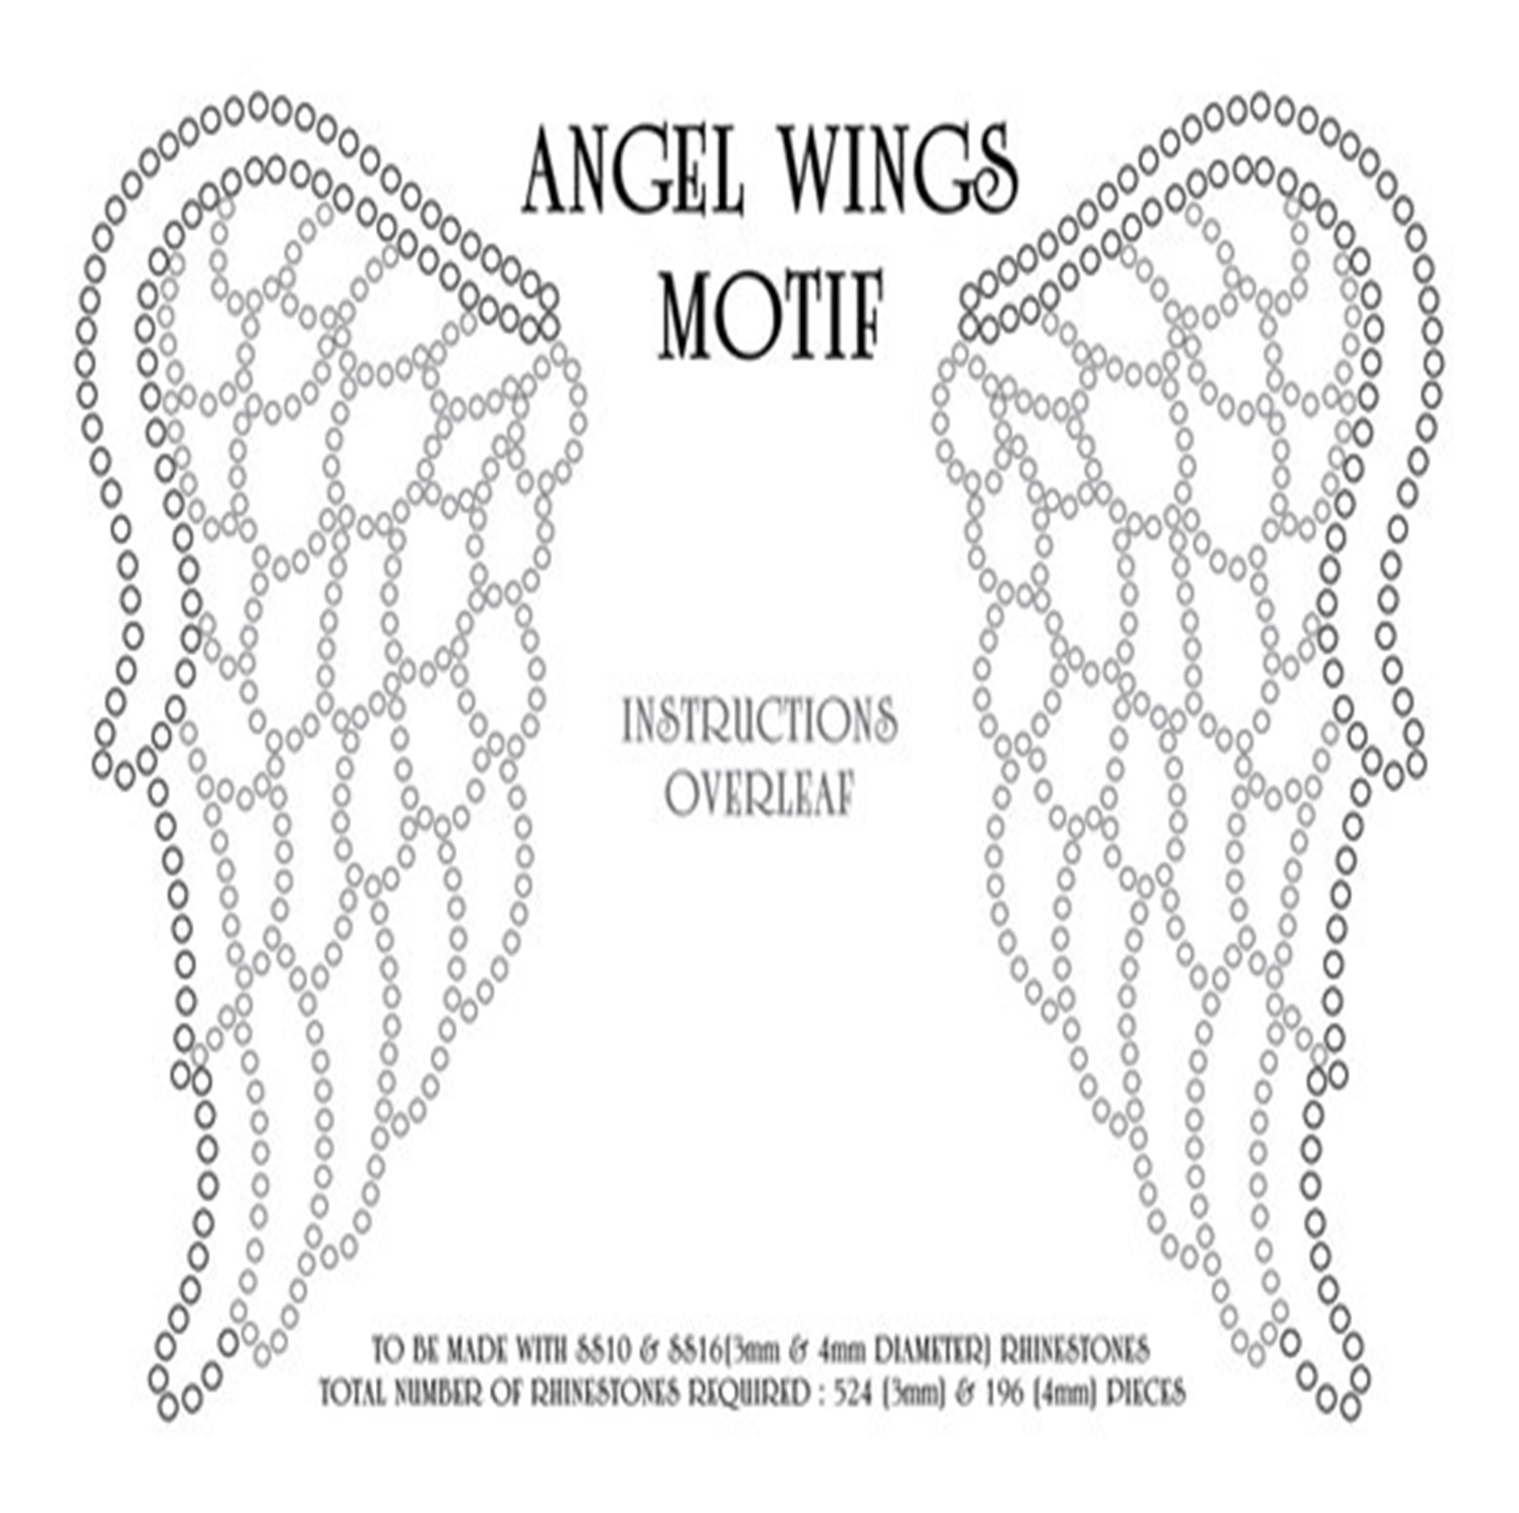 Angel Wings Coloring Pages | Publicado por Vanessa Murillo en 12 ...